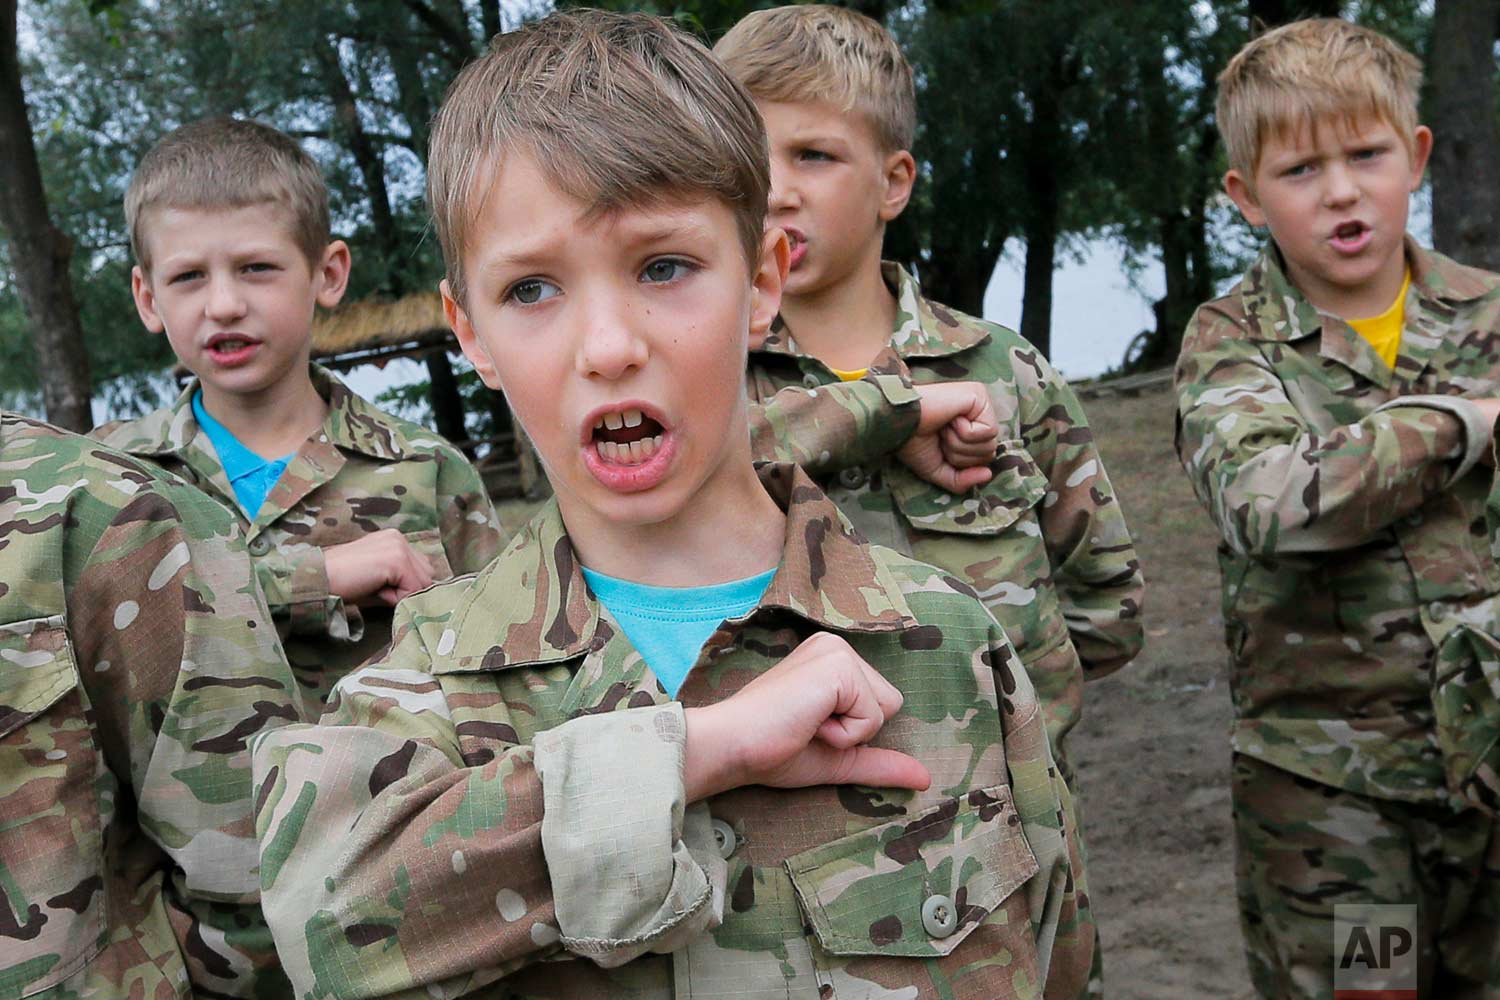 In this photo taken on Friday, July 14, 2017, students at a paramilitary camp for children sing the Ukrainian national anthem before the start of exercises outside Kiev, Ukraine. (AP Photo/Efrem Lukatsky)